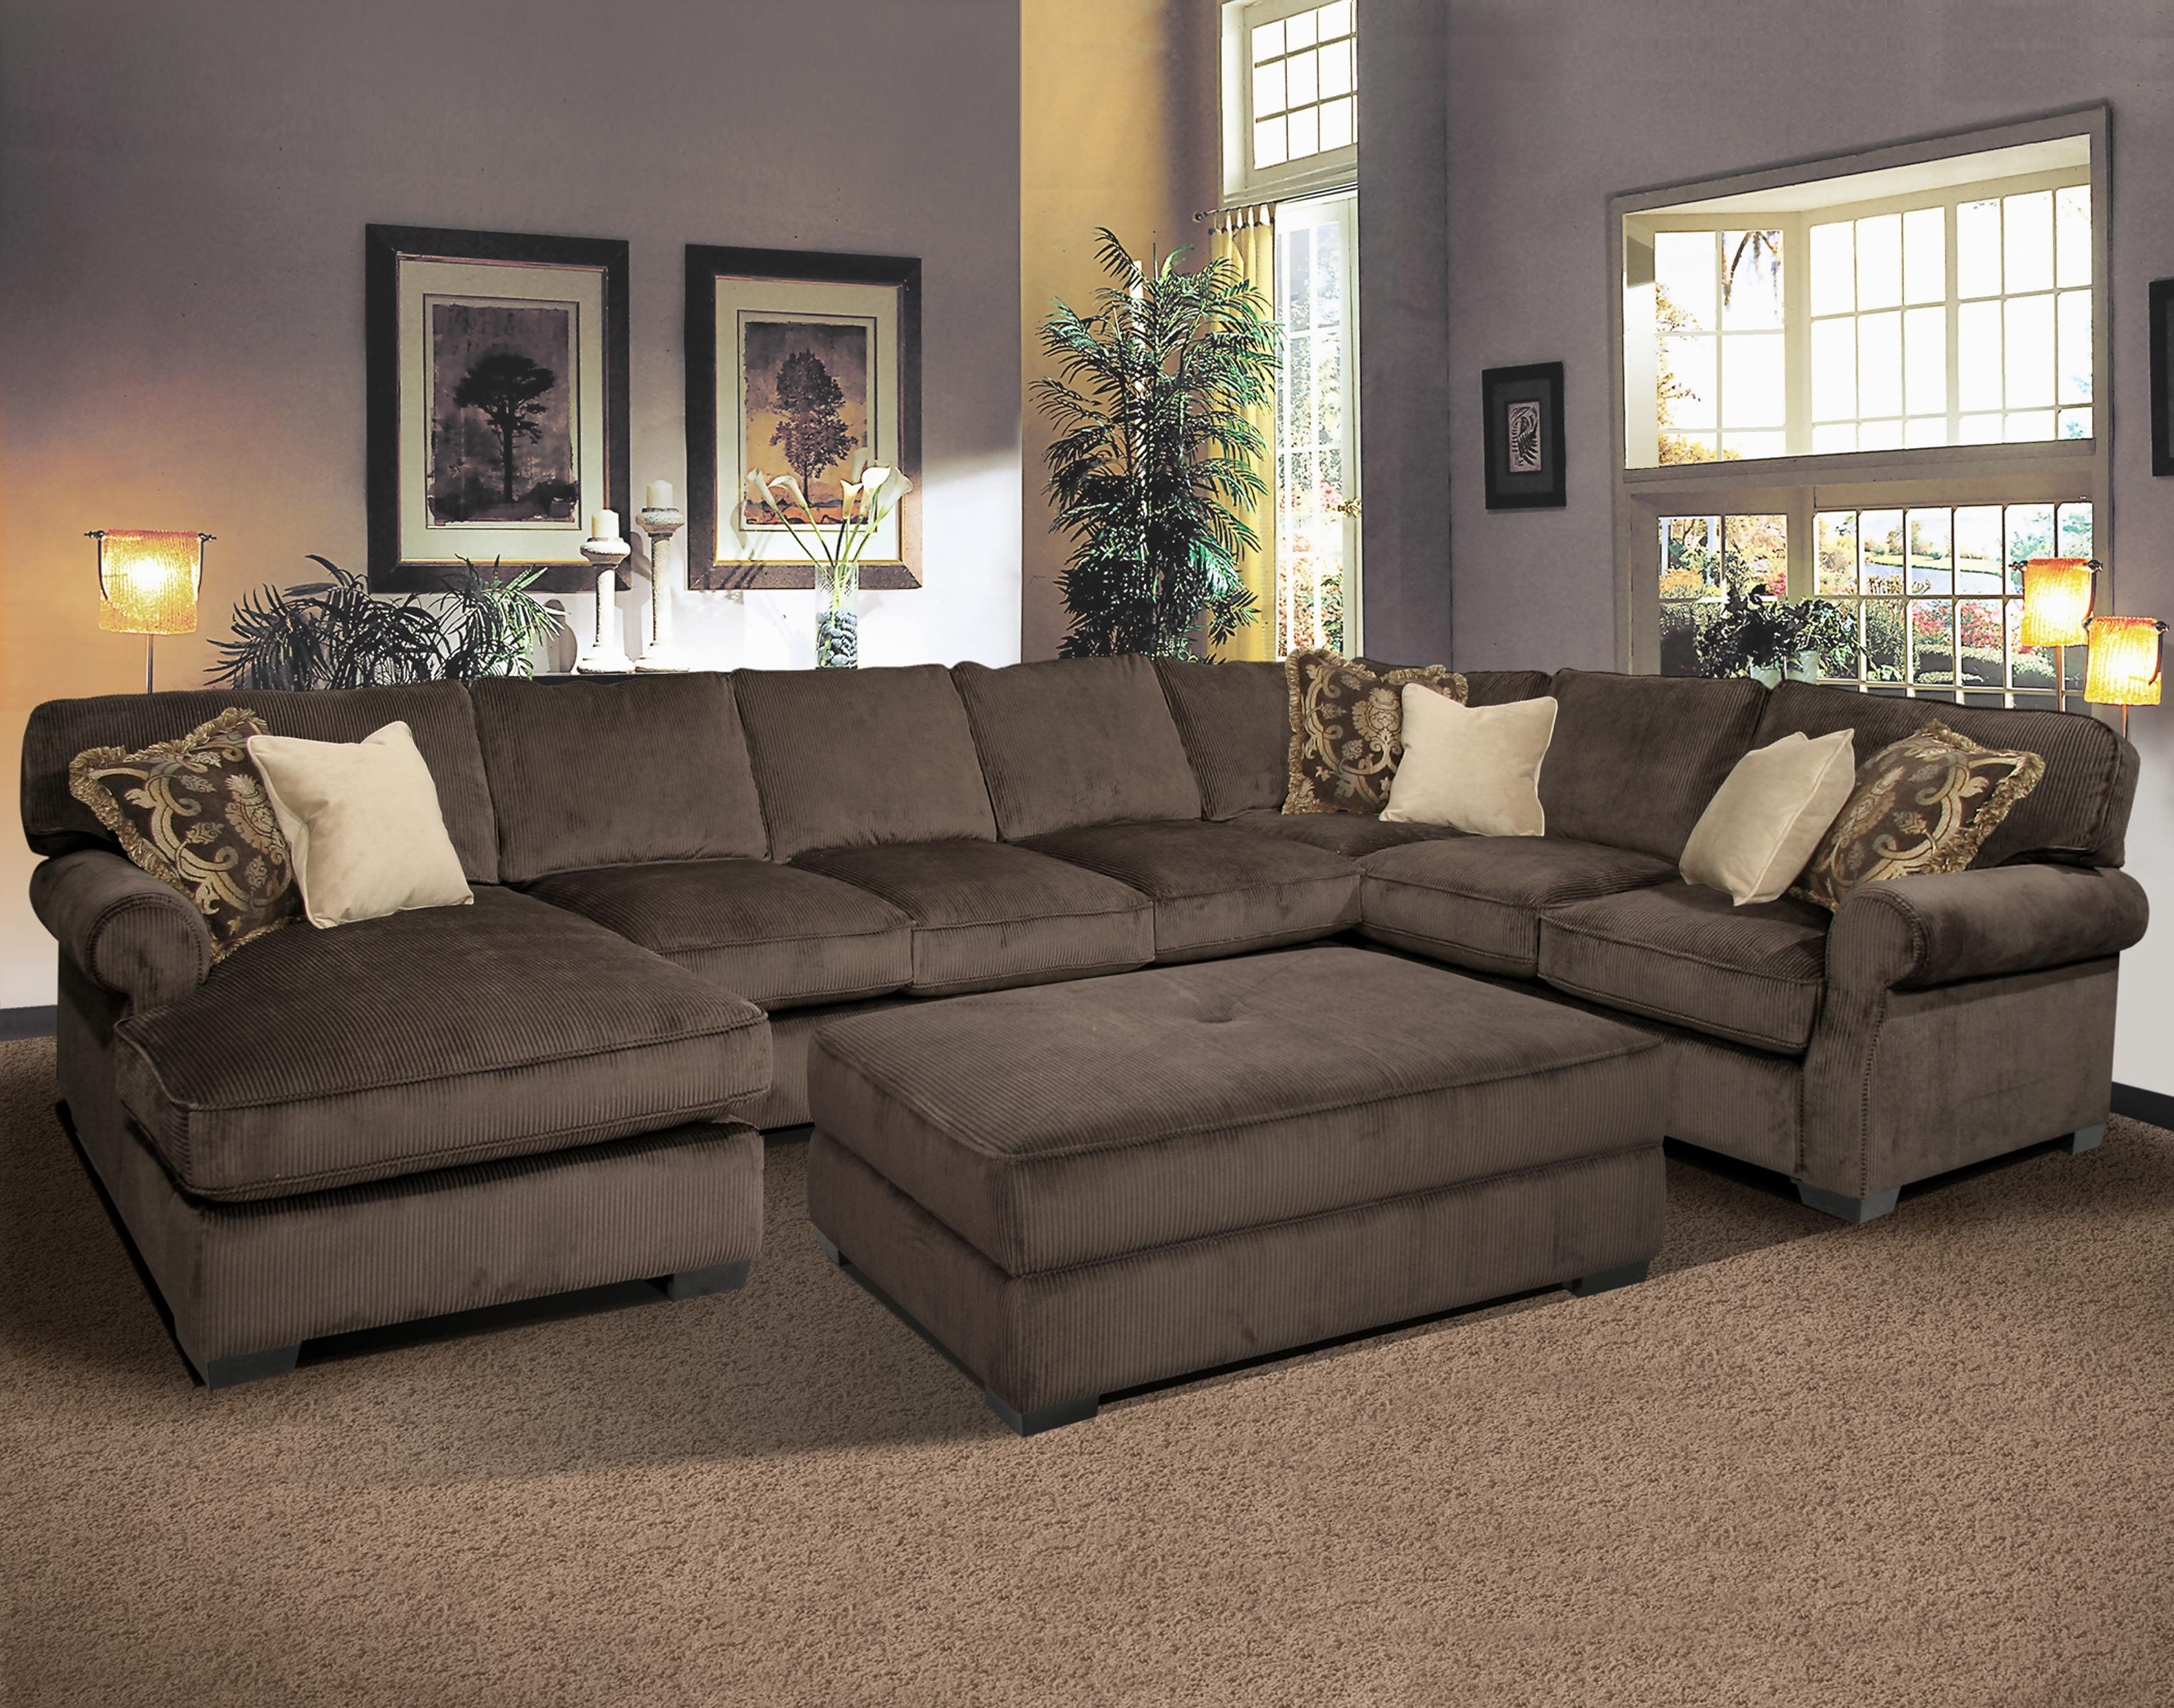 Sectional Couches With Chaise With 2018 Attractive Sectional Sleeper Sofa With Chaise Fantastic Furniture (View 8 of 15)